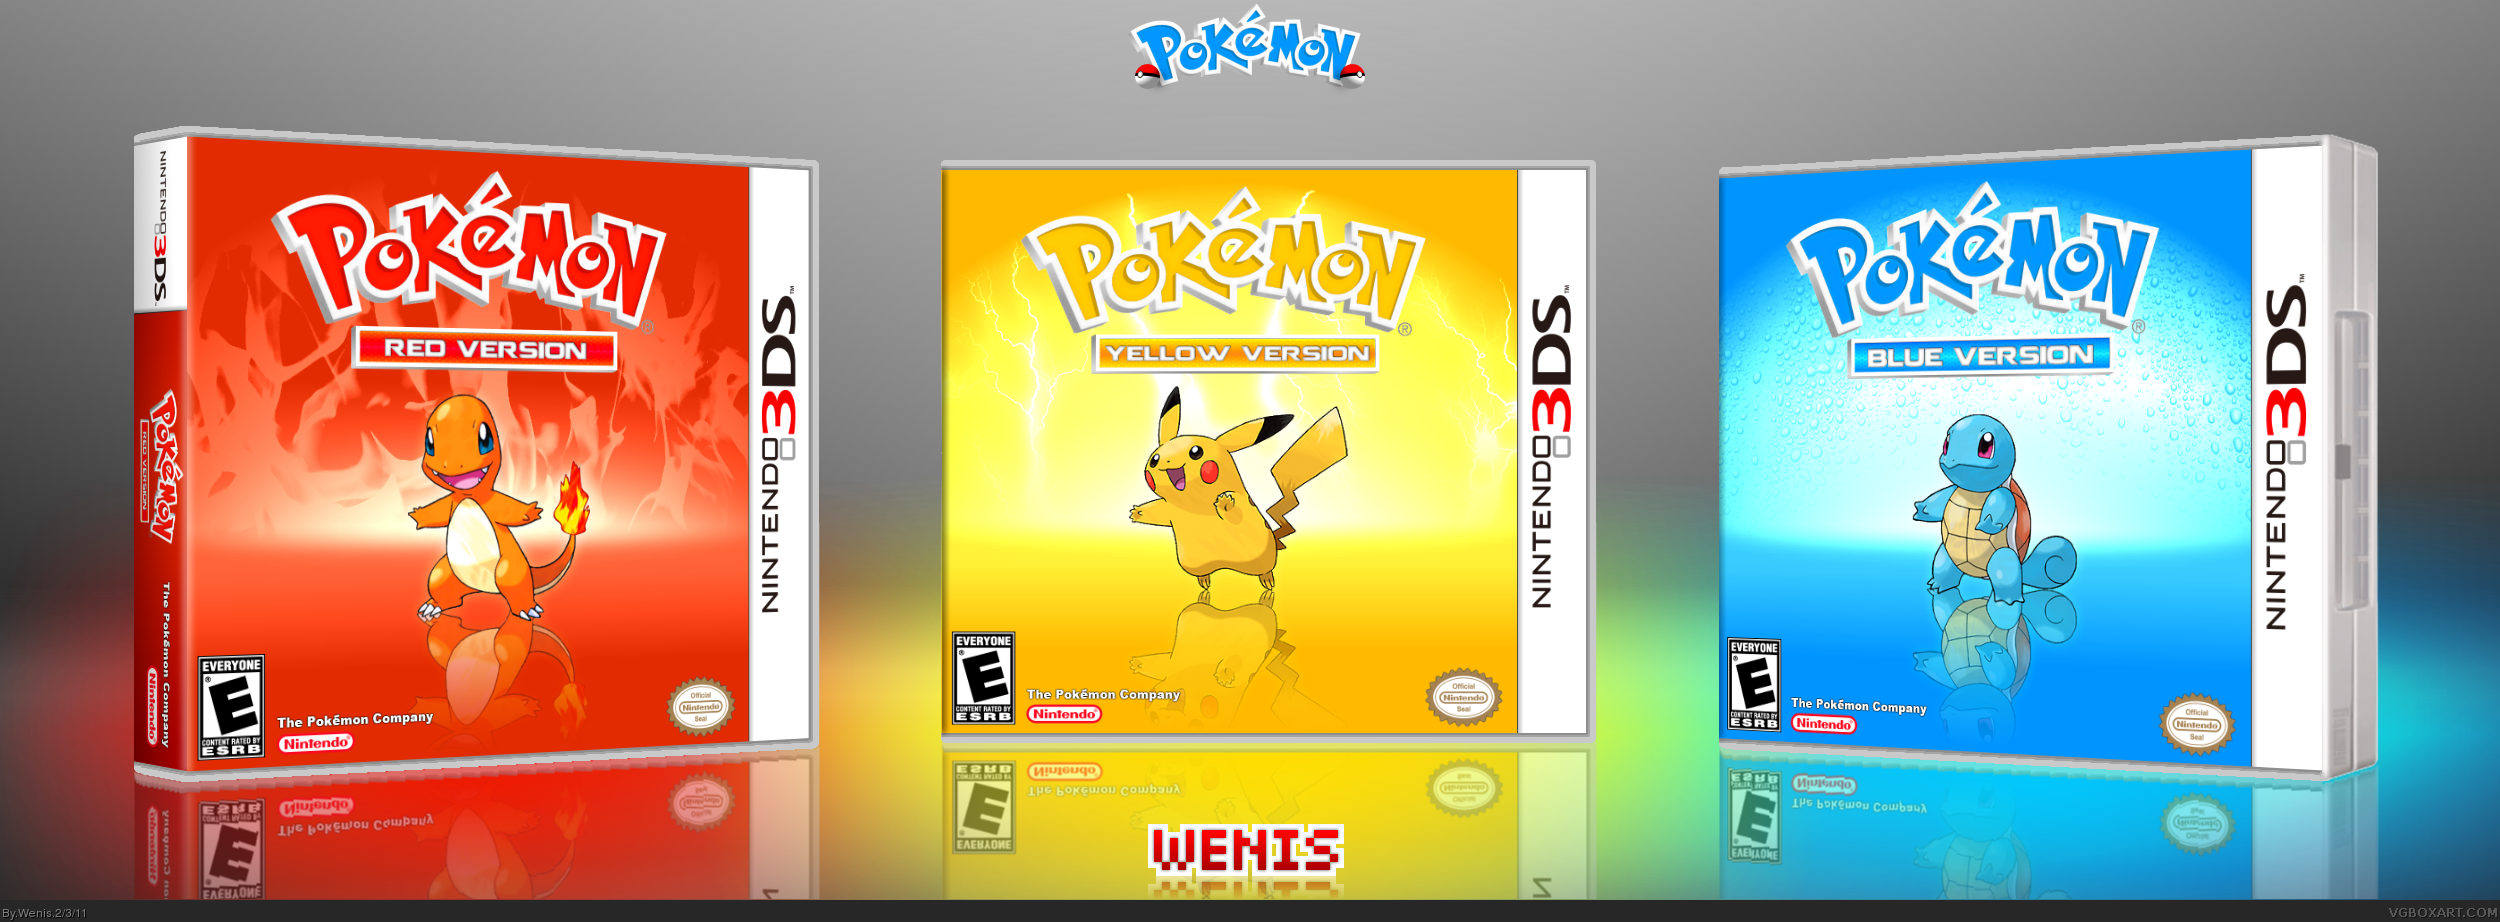 Viewing Full Size Pokemon Red Yellow Blue Box Cover